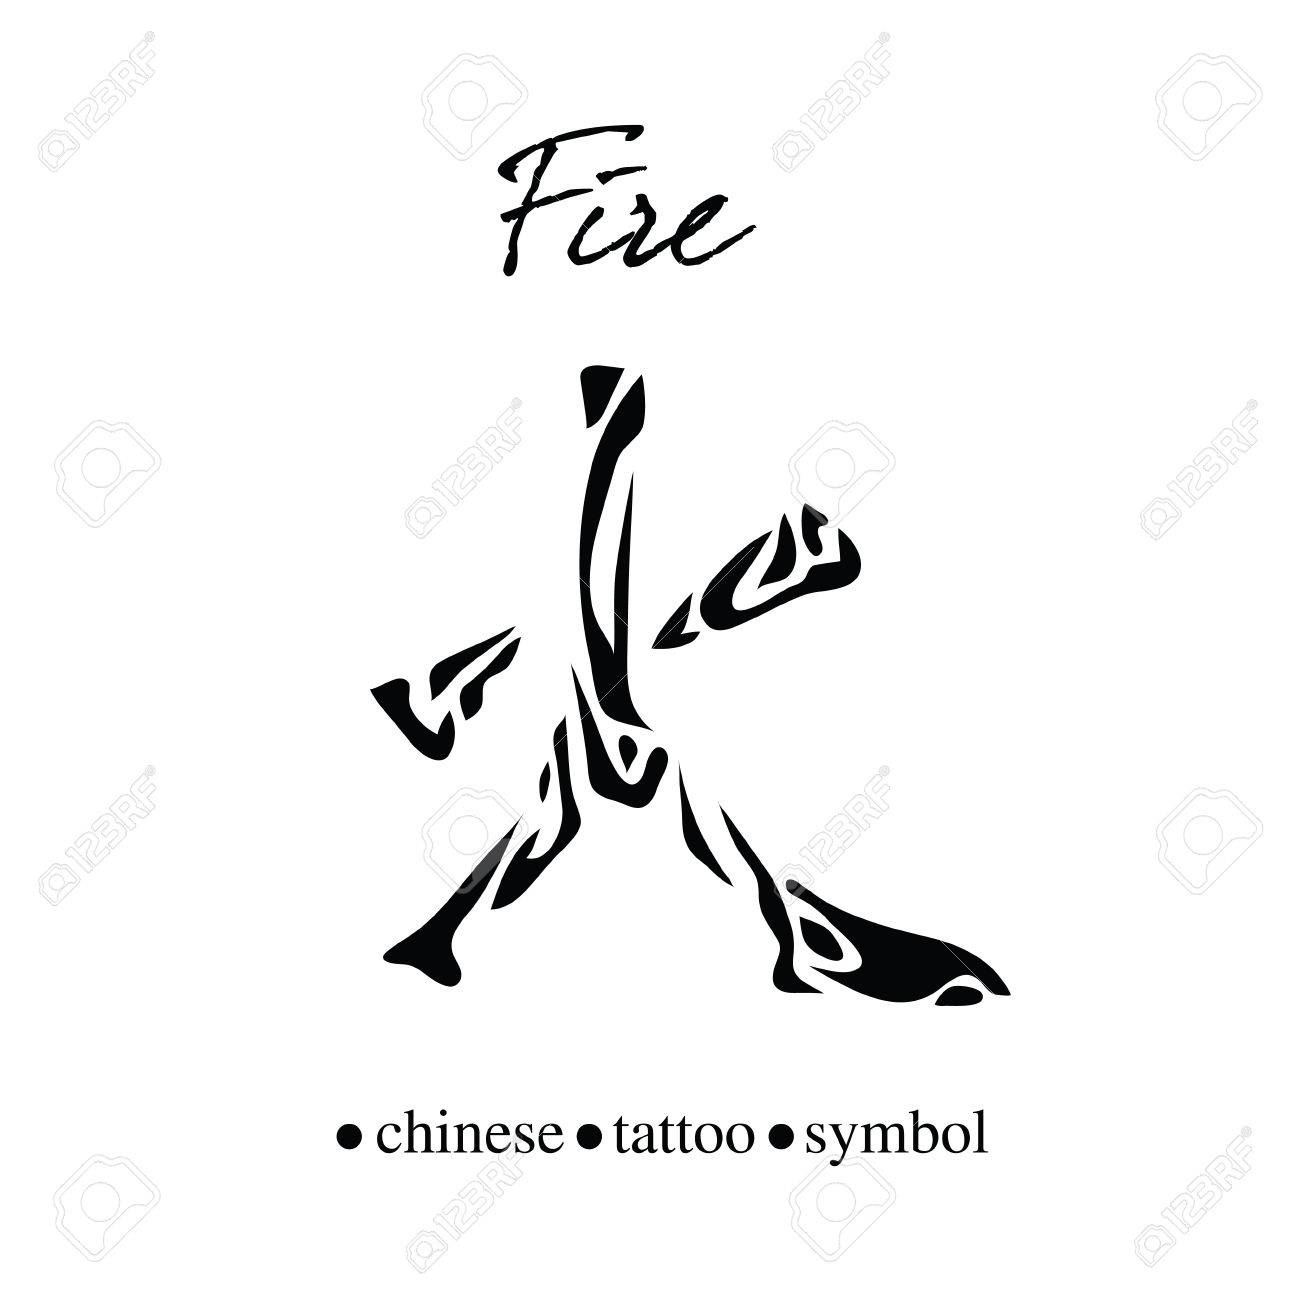 Chinese Character Calligraphy For Fire Royalty Free Cliparts